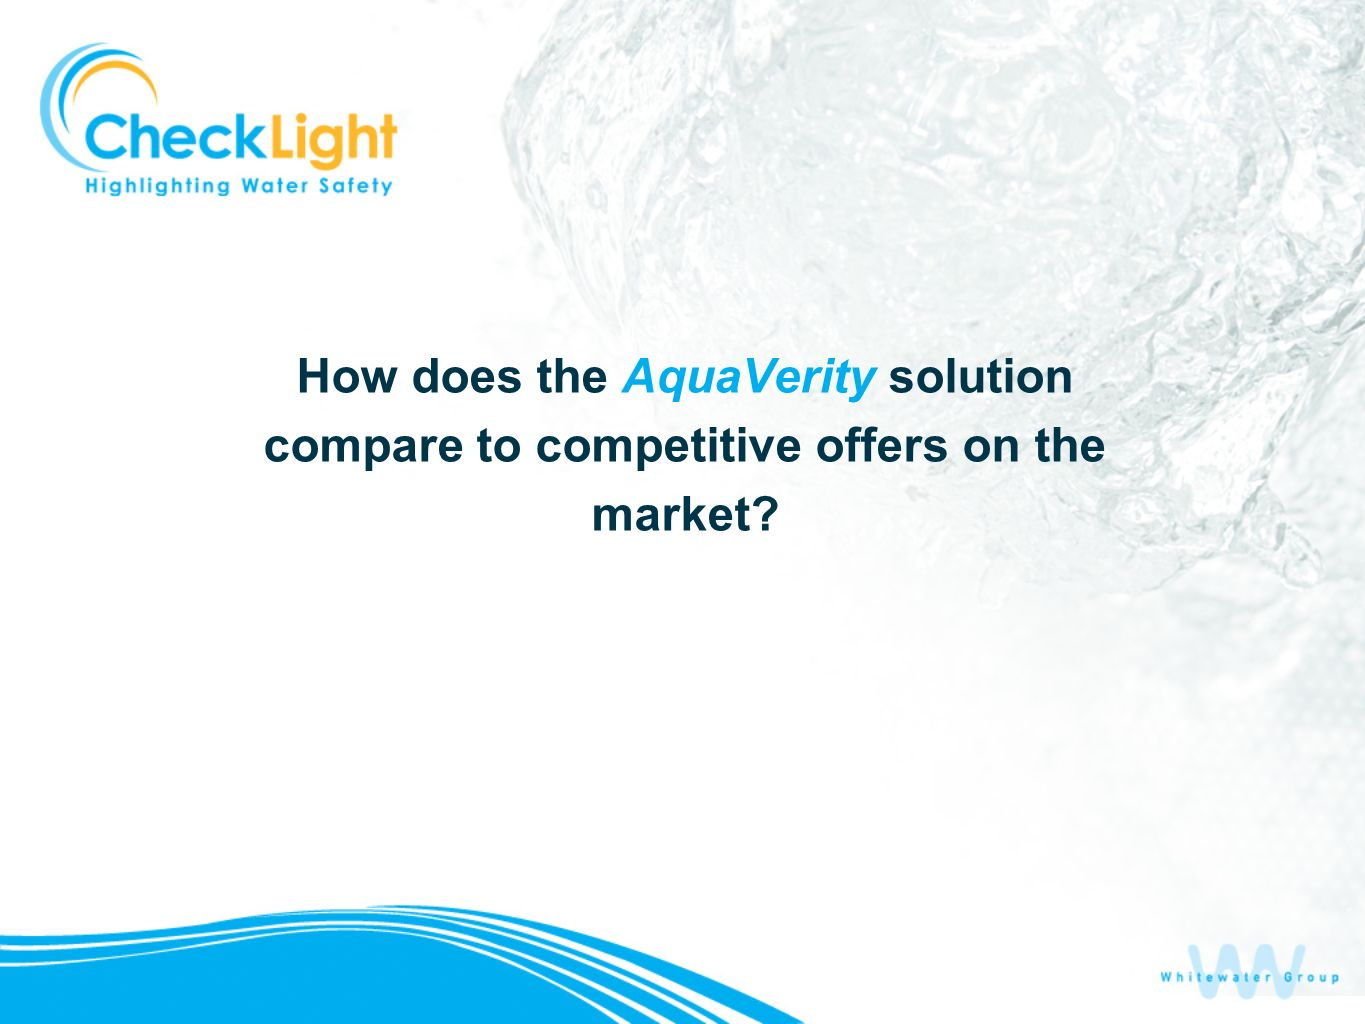 How does the AquaVerity solution compare to competitive offers on the market